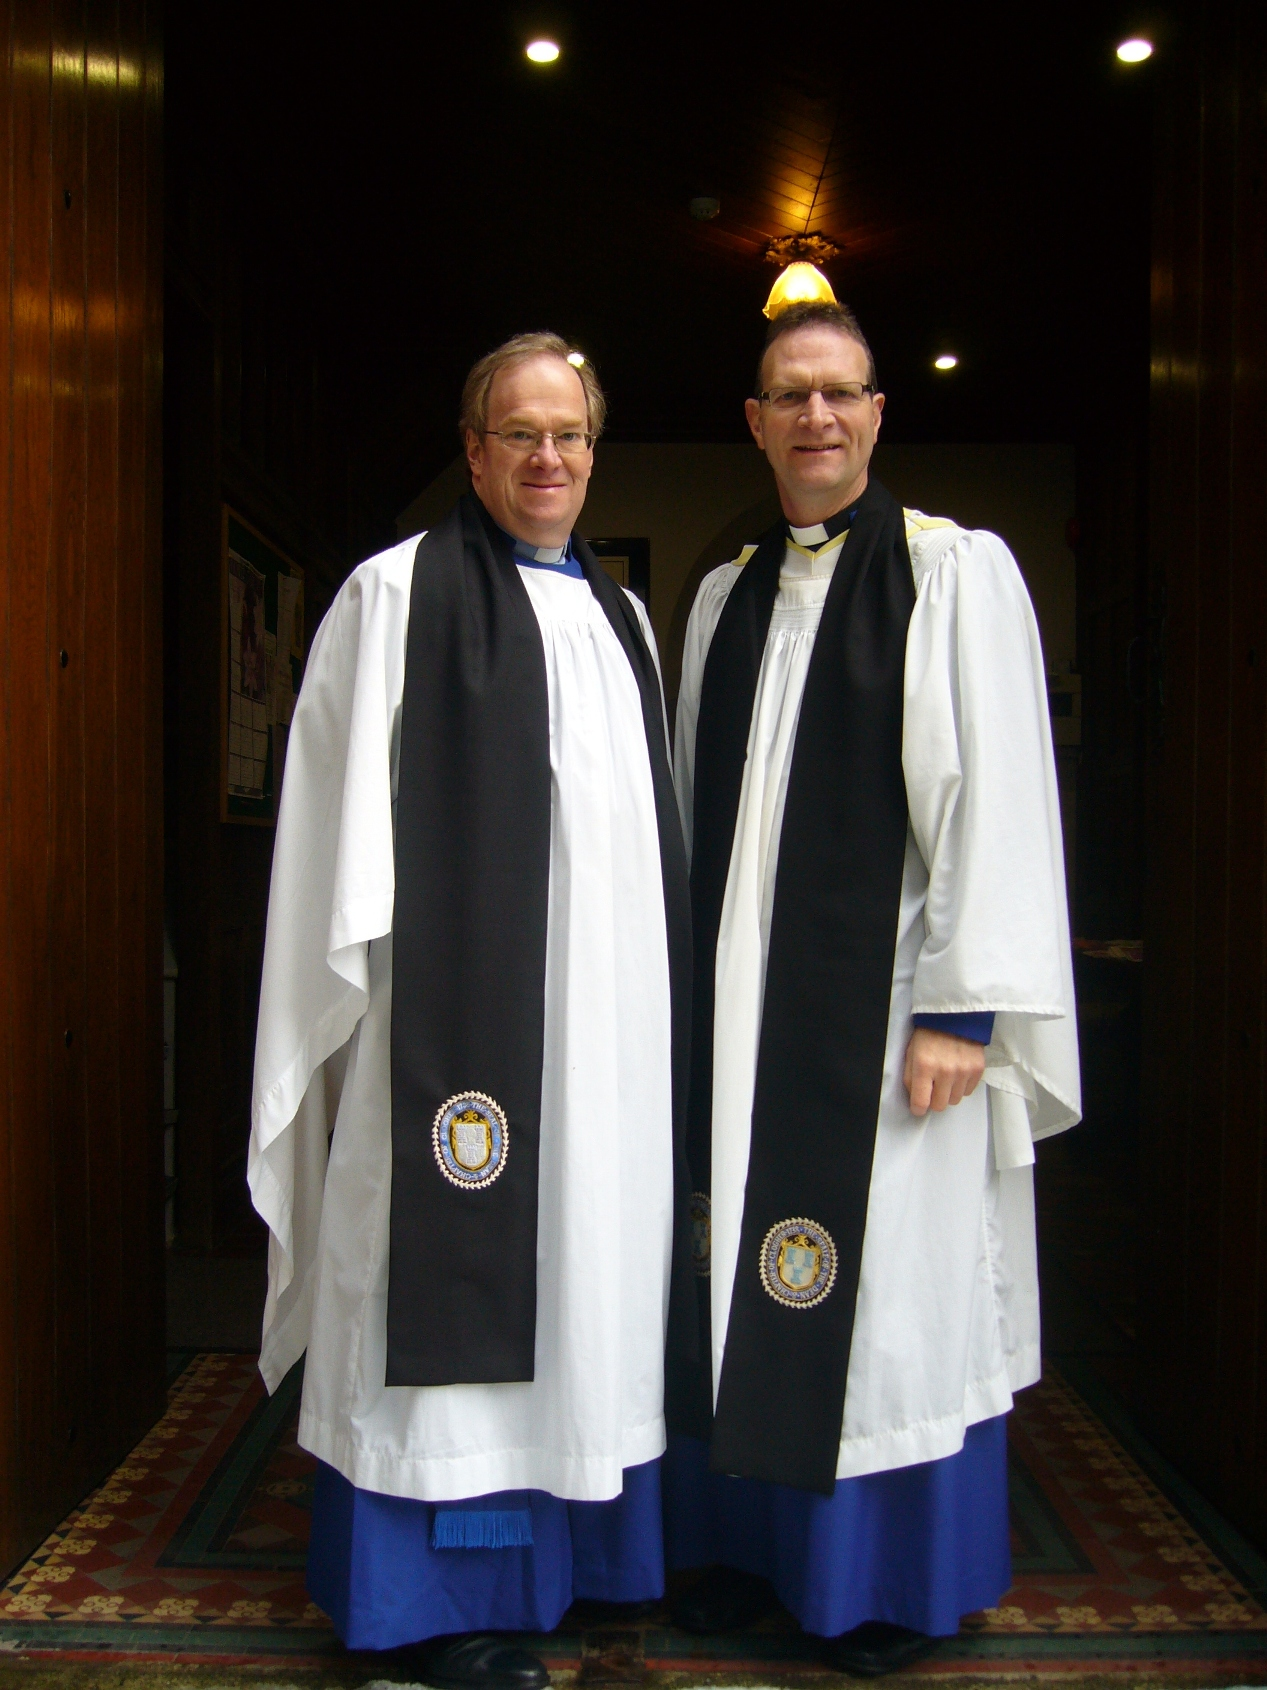 Canon Arthur Barrett pictured with Dean Kenny Hall